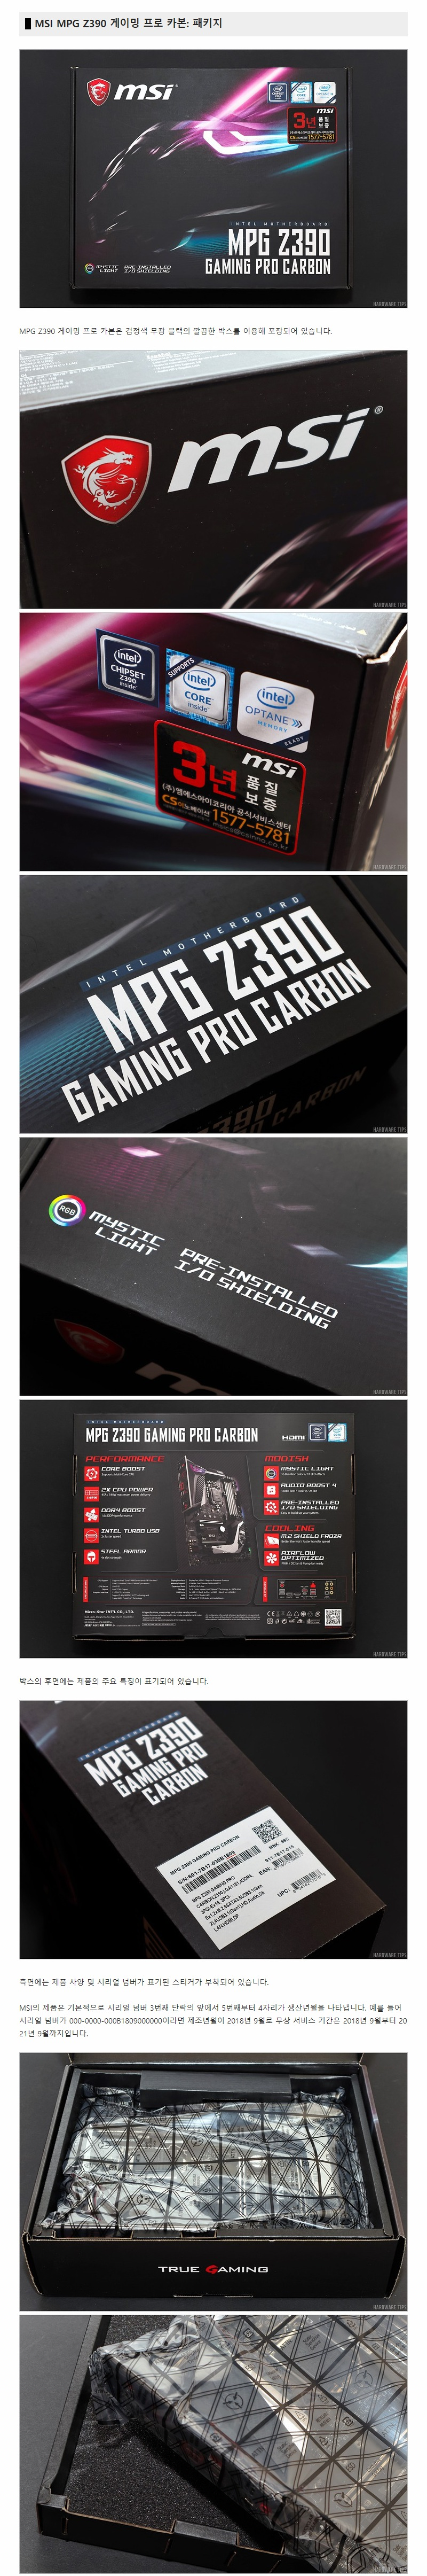 mpg_z390_gaming_pro_carbon_2.jpg